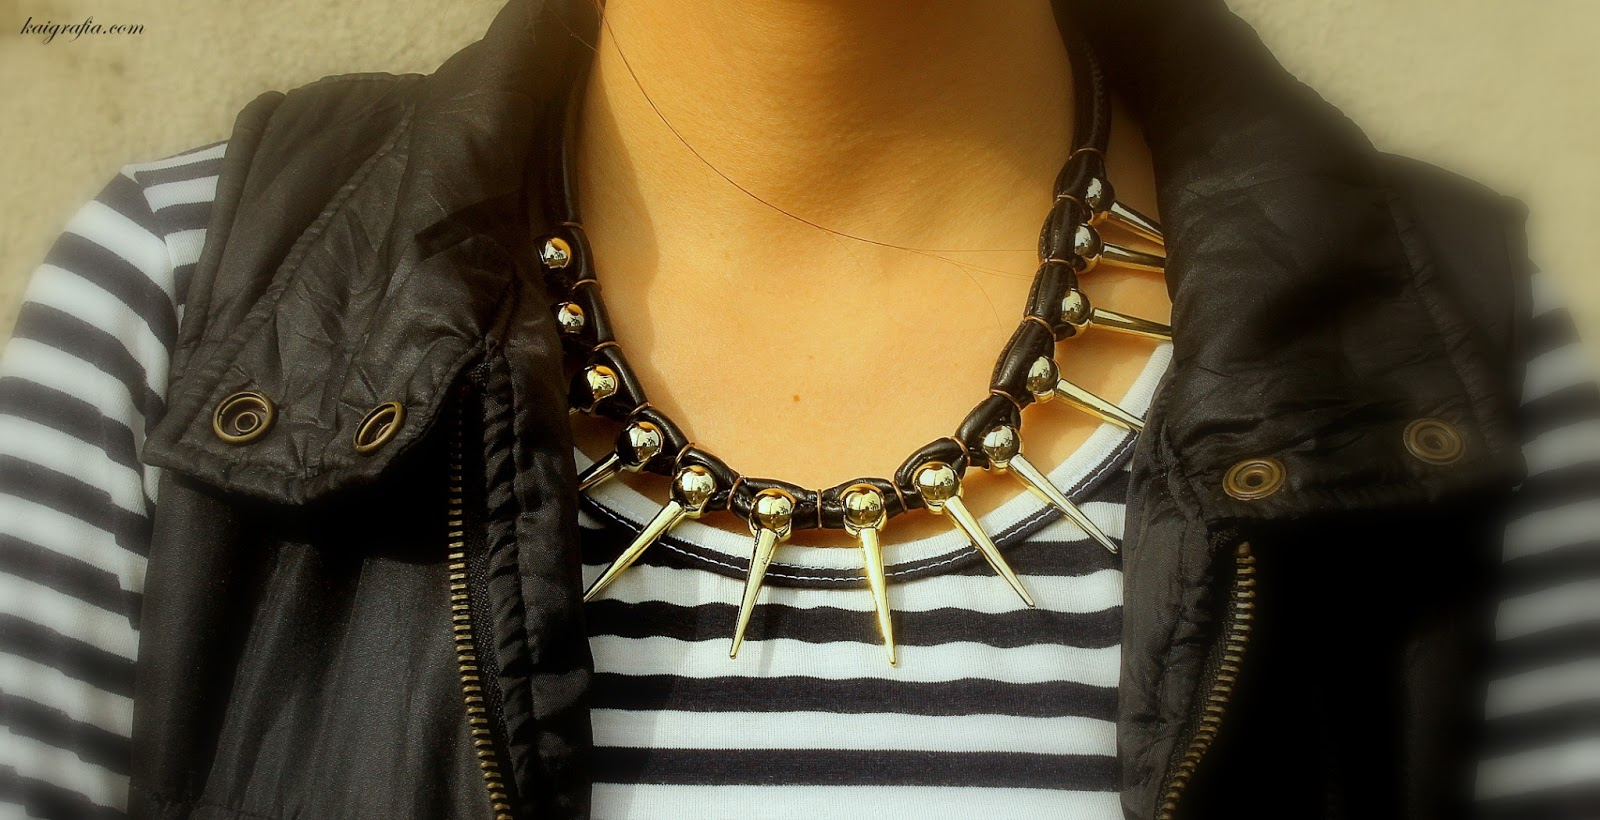 sugar-rush spiked necklace